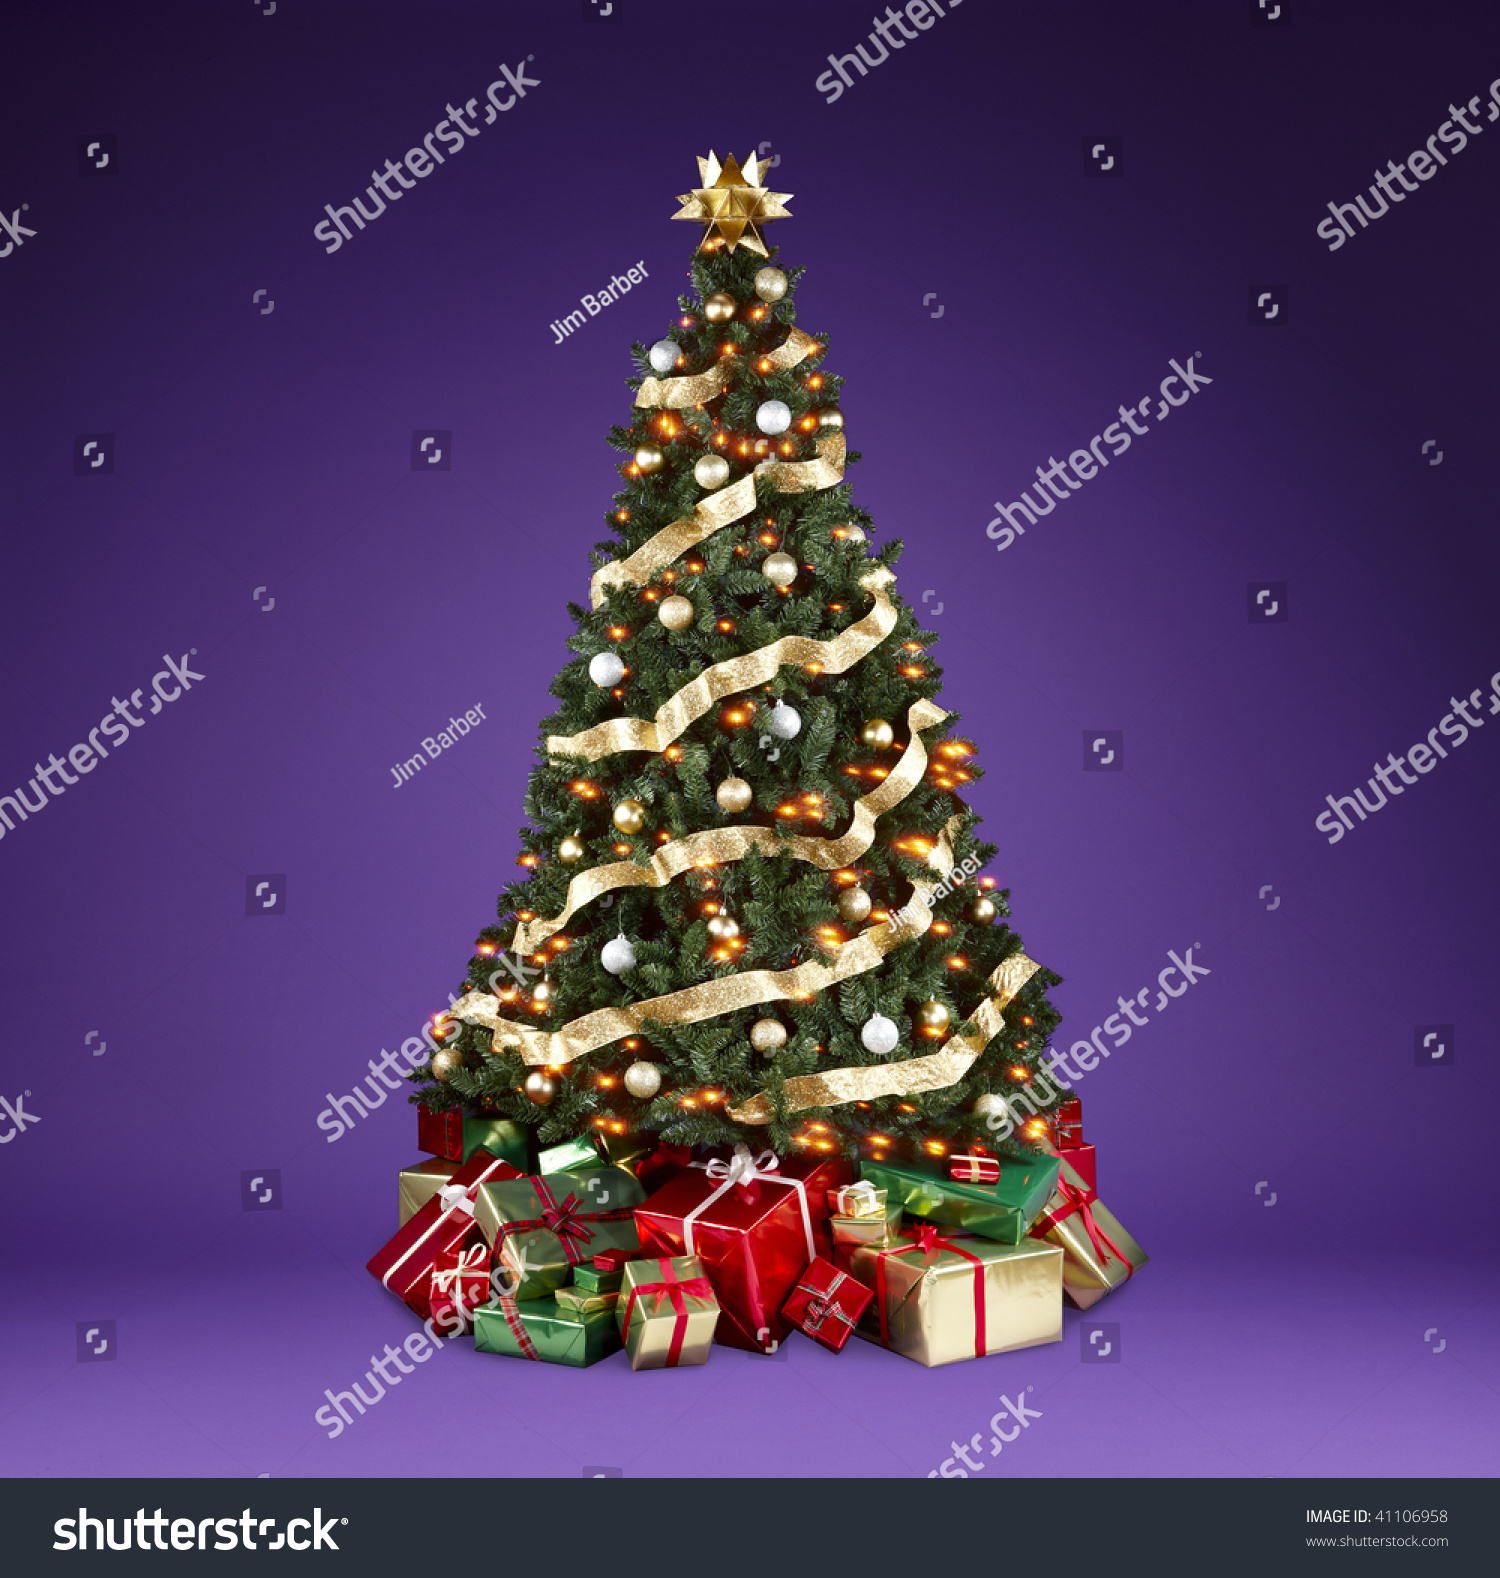 Beautifully Decorated Christmas Tree With Lights Ribbons